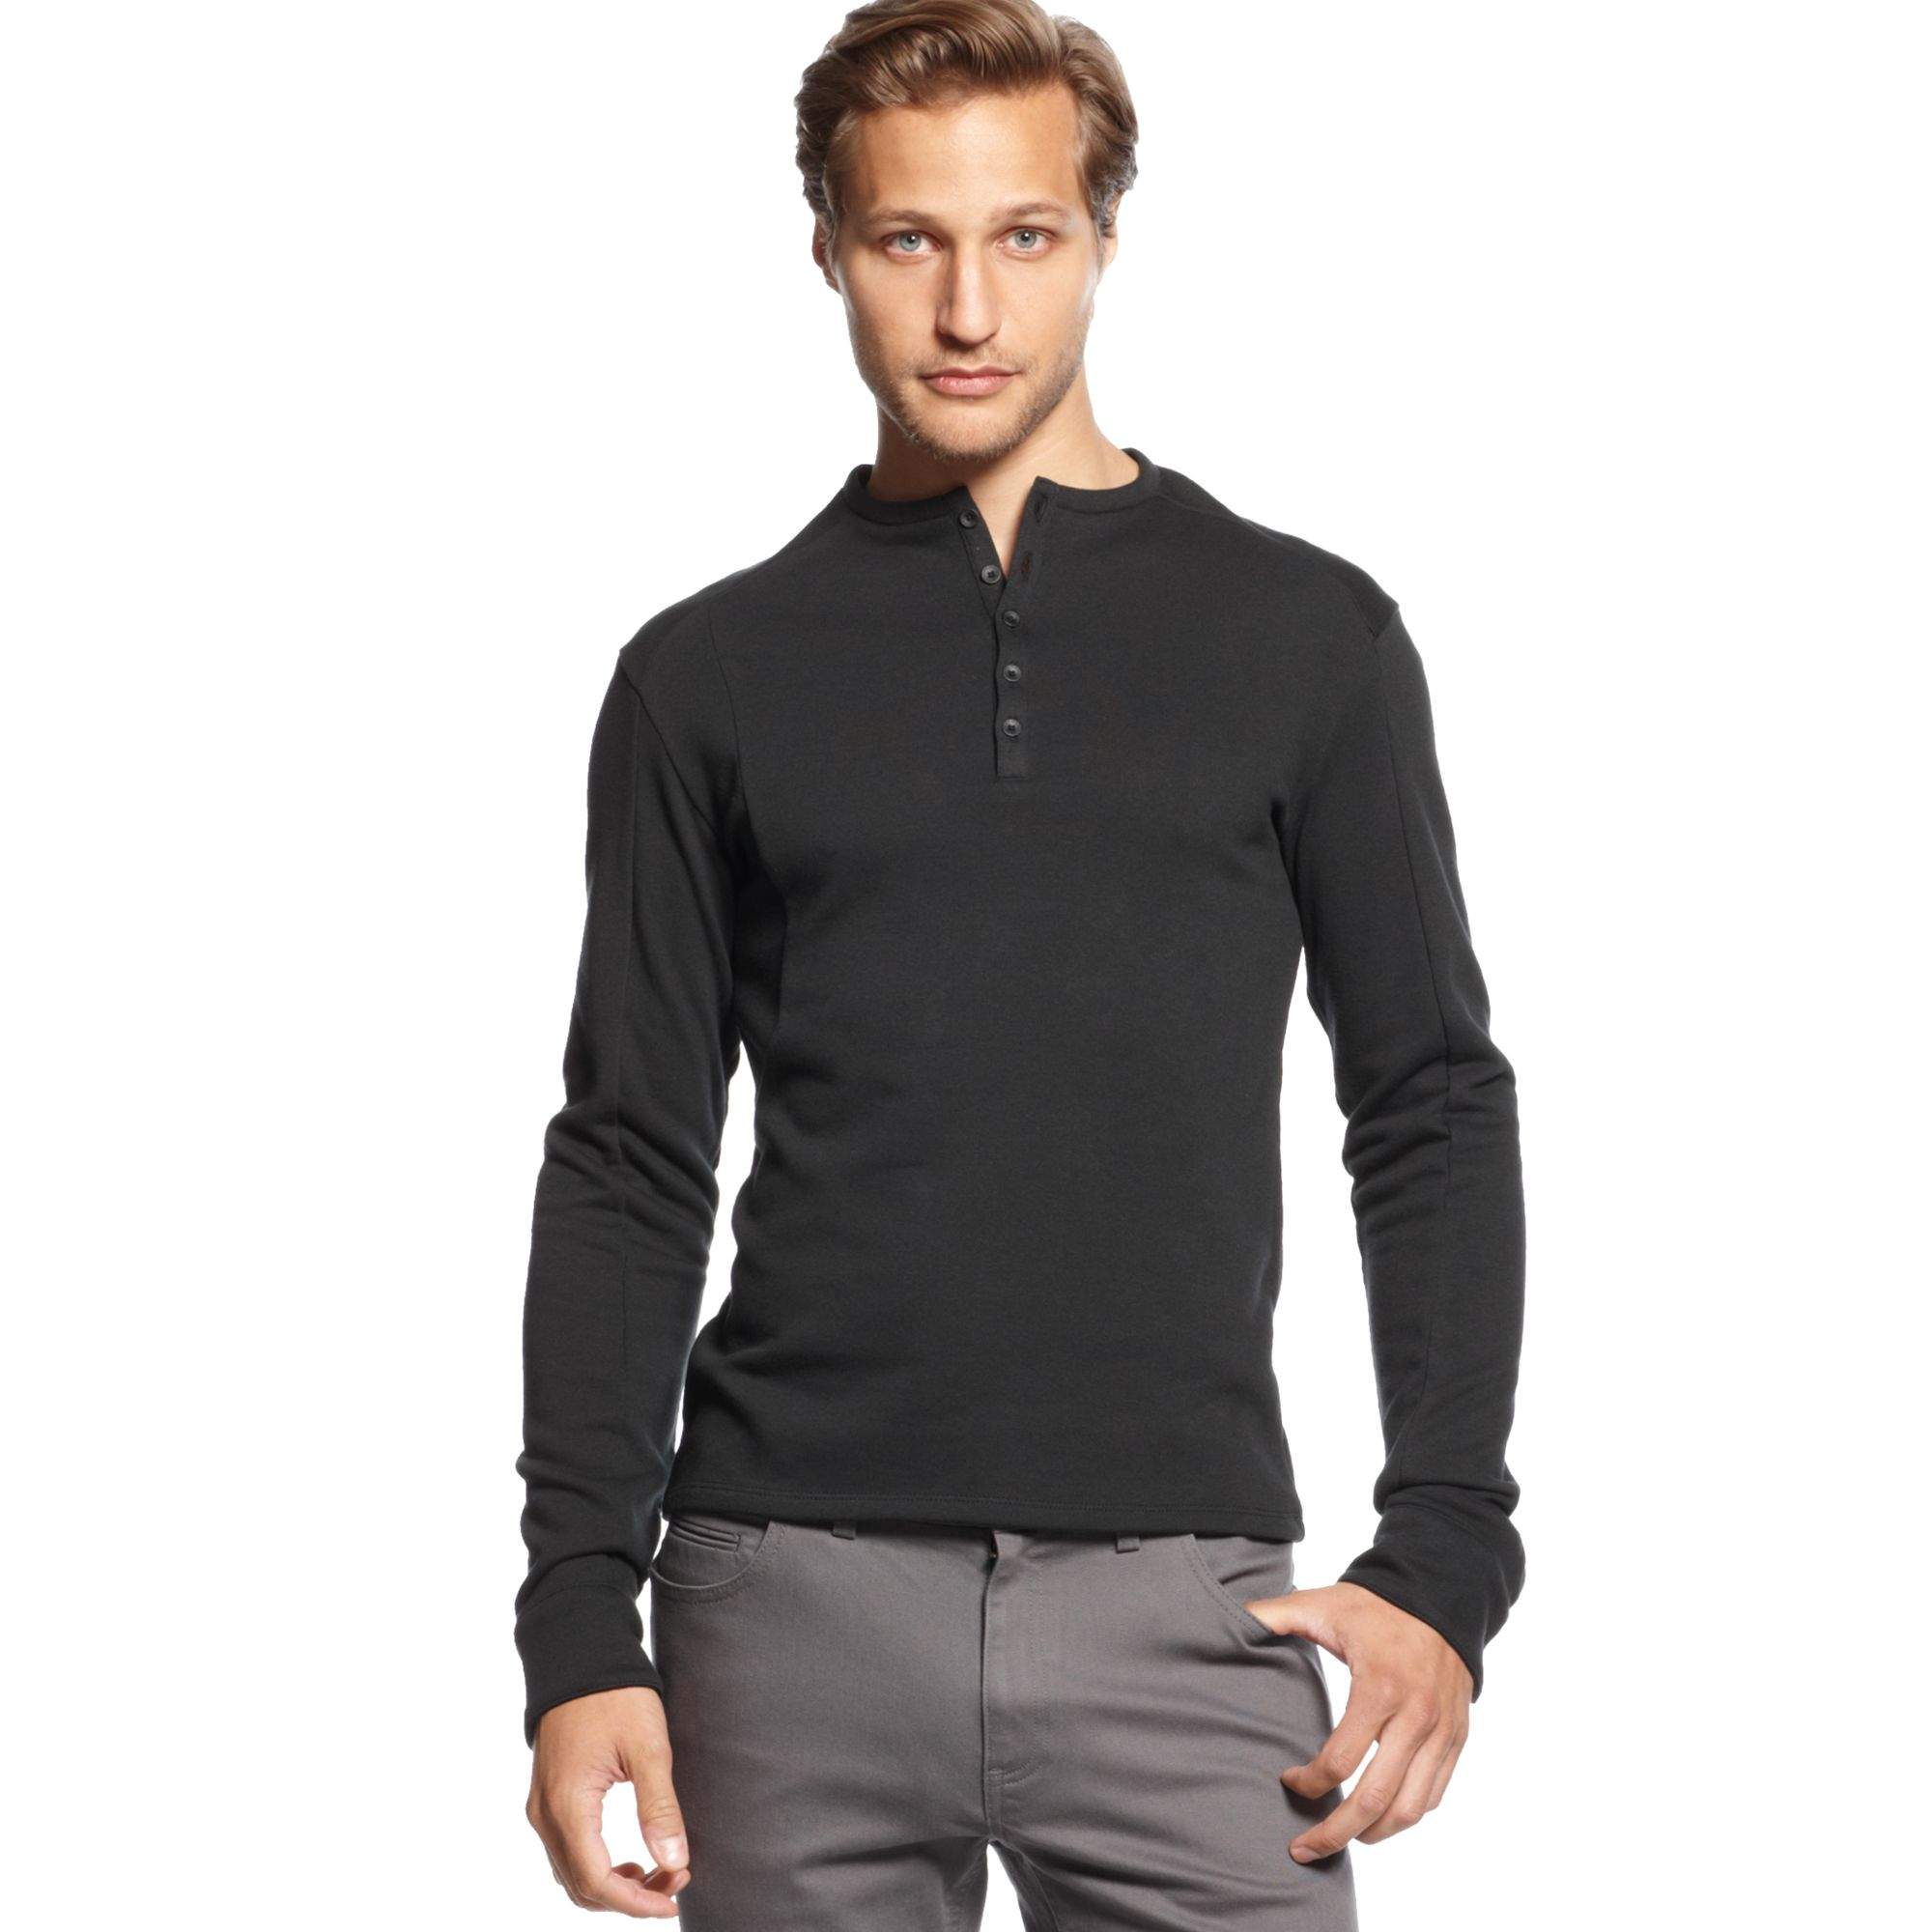 This classic long-sleeved tee has your favorite Henley neck for adjustable comfort control. Made with long sleeves for warmth and comfort, the relaxed fit slides on easily and feels good all day long.